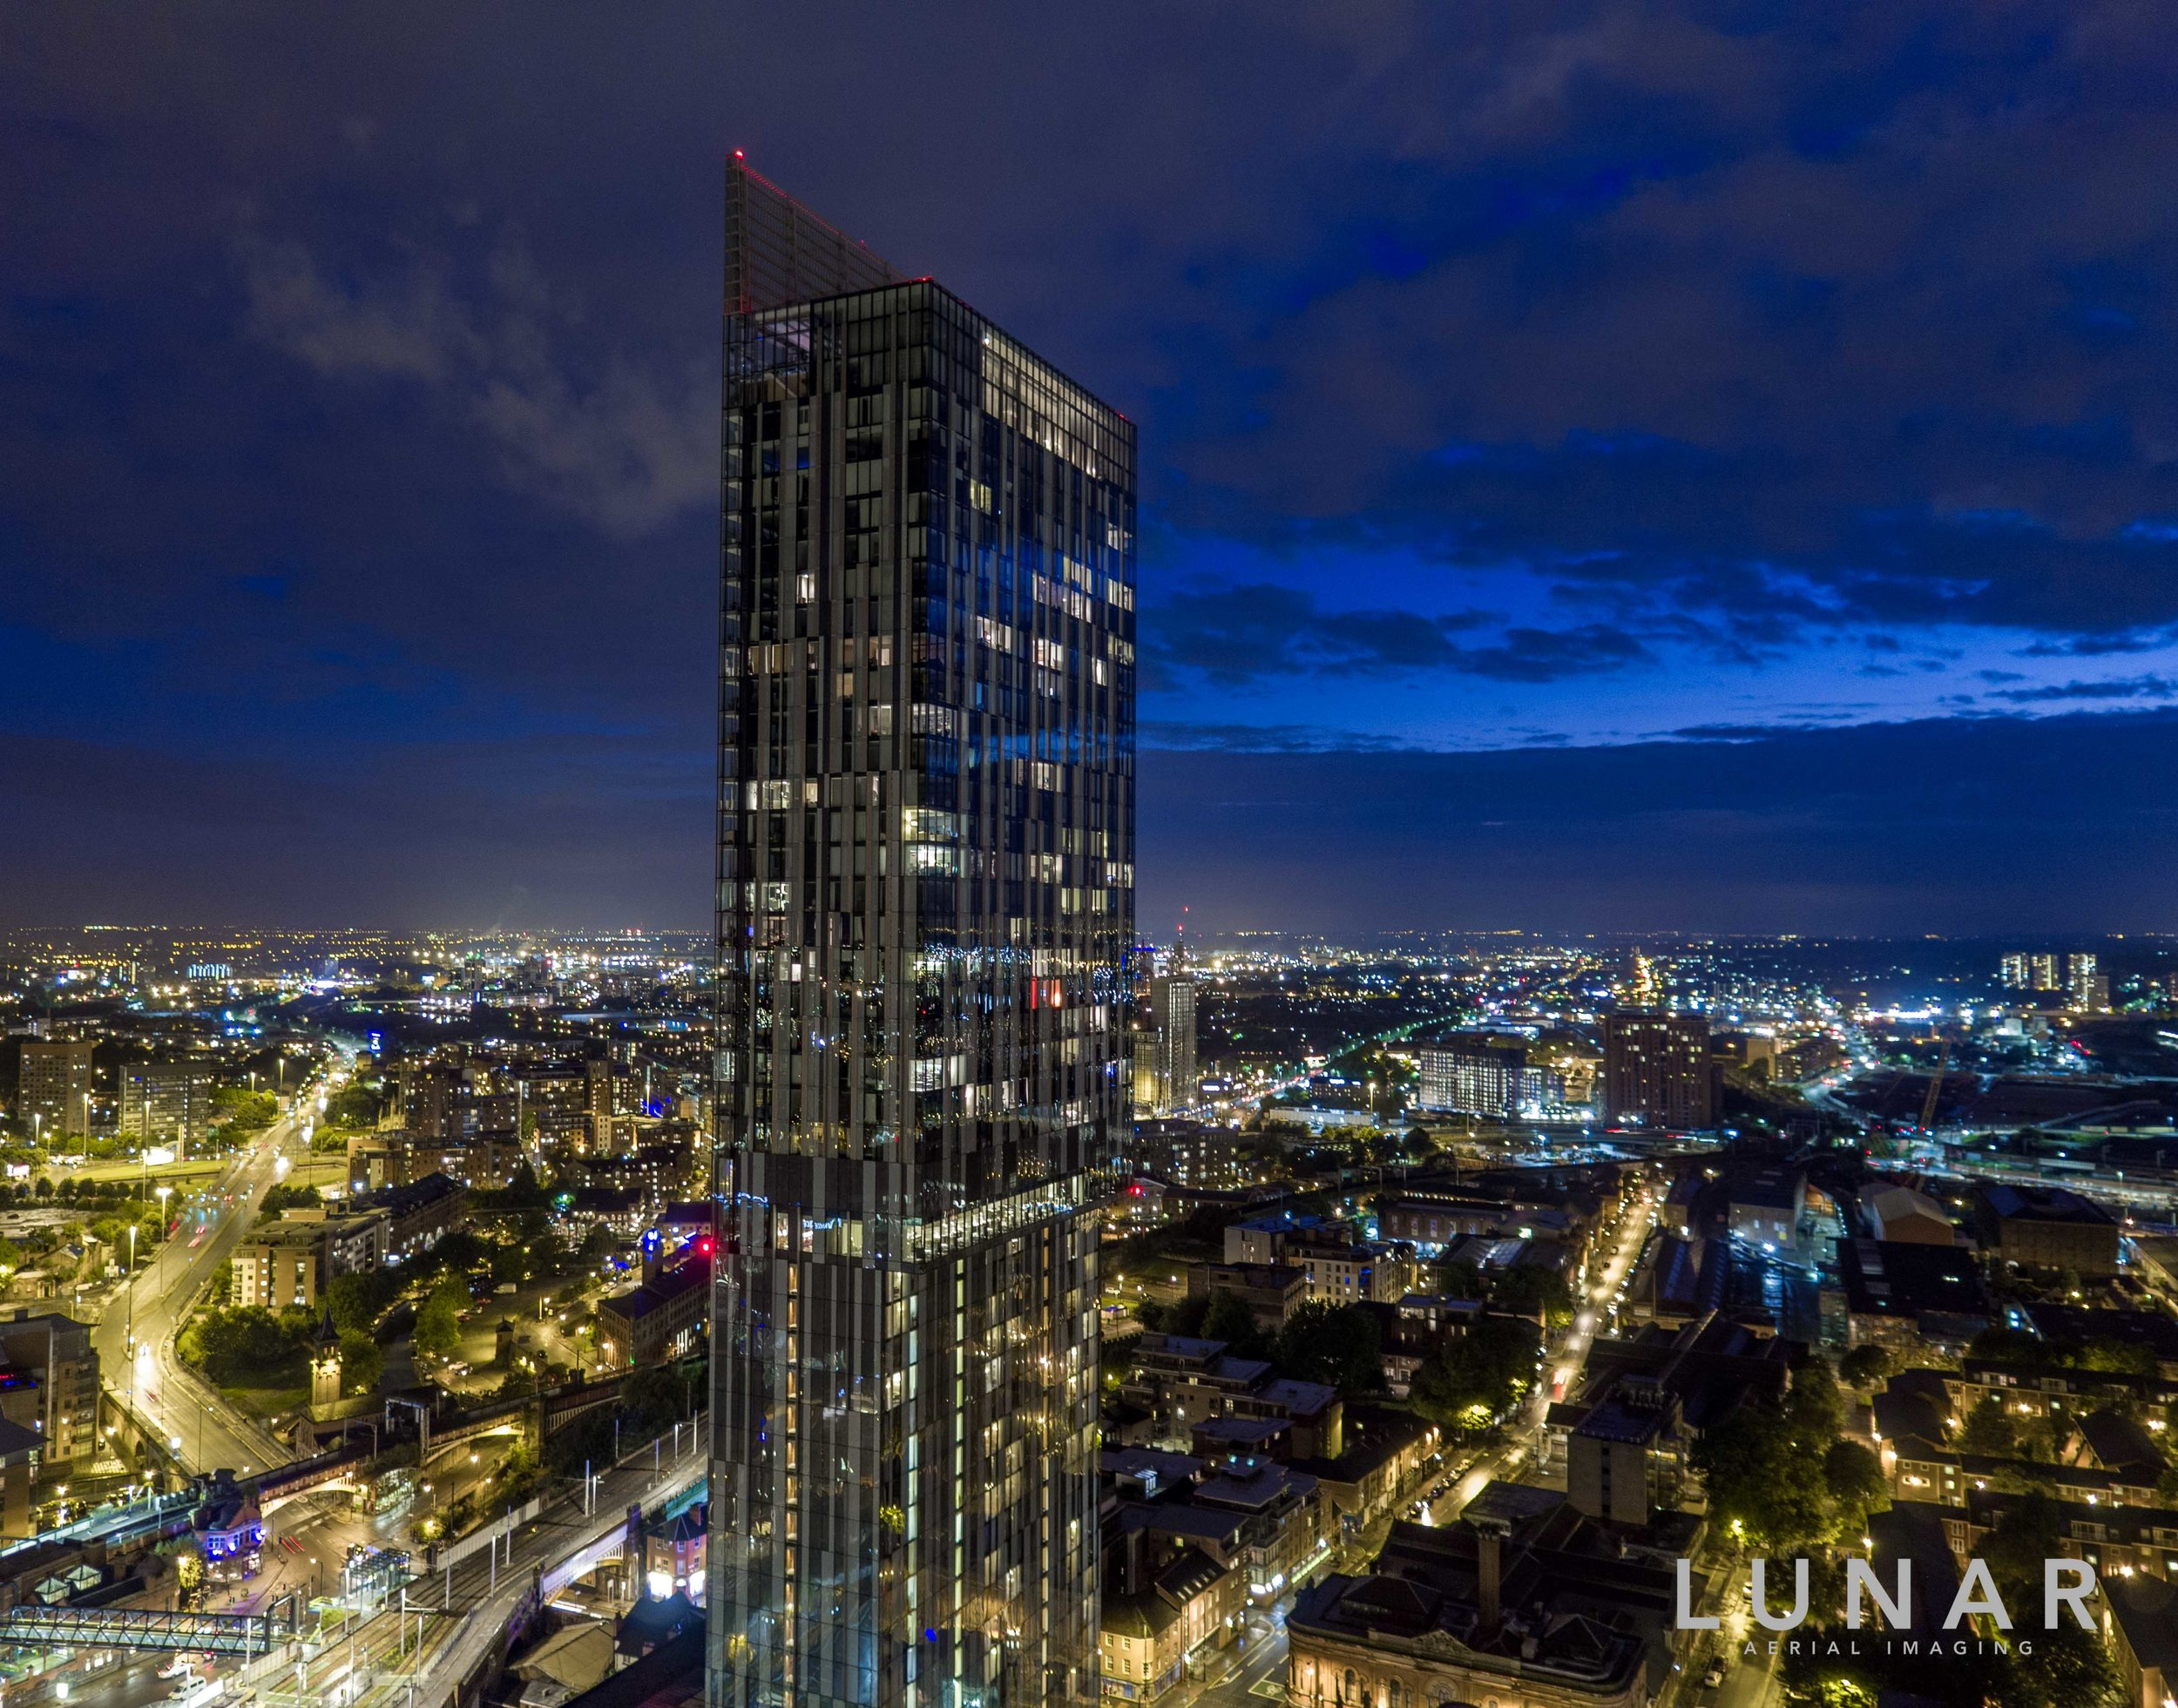 Aerial view of Manchester City centre at night